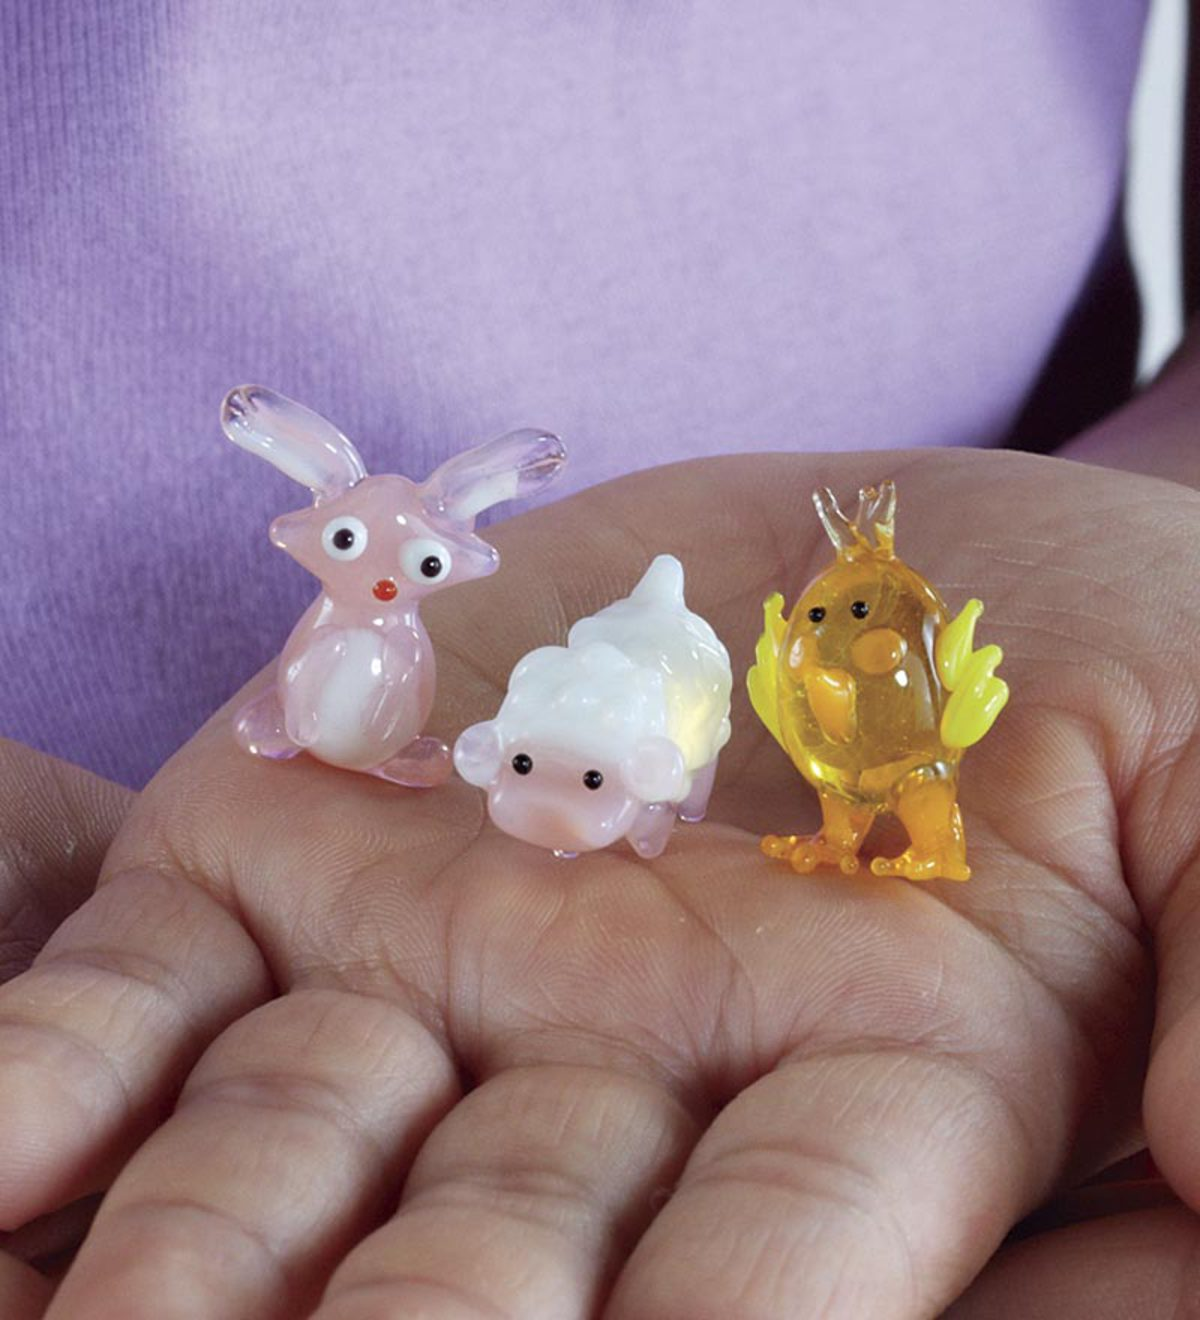 Easter Creatures Glass Figurines